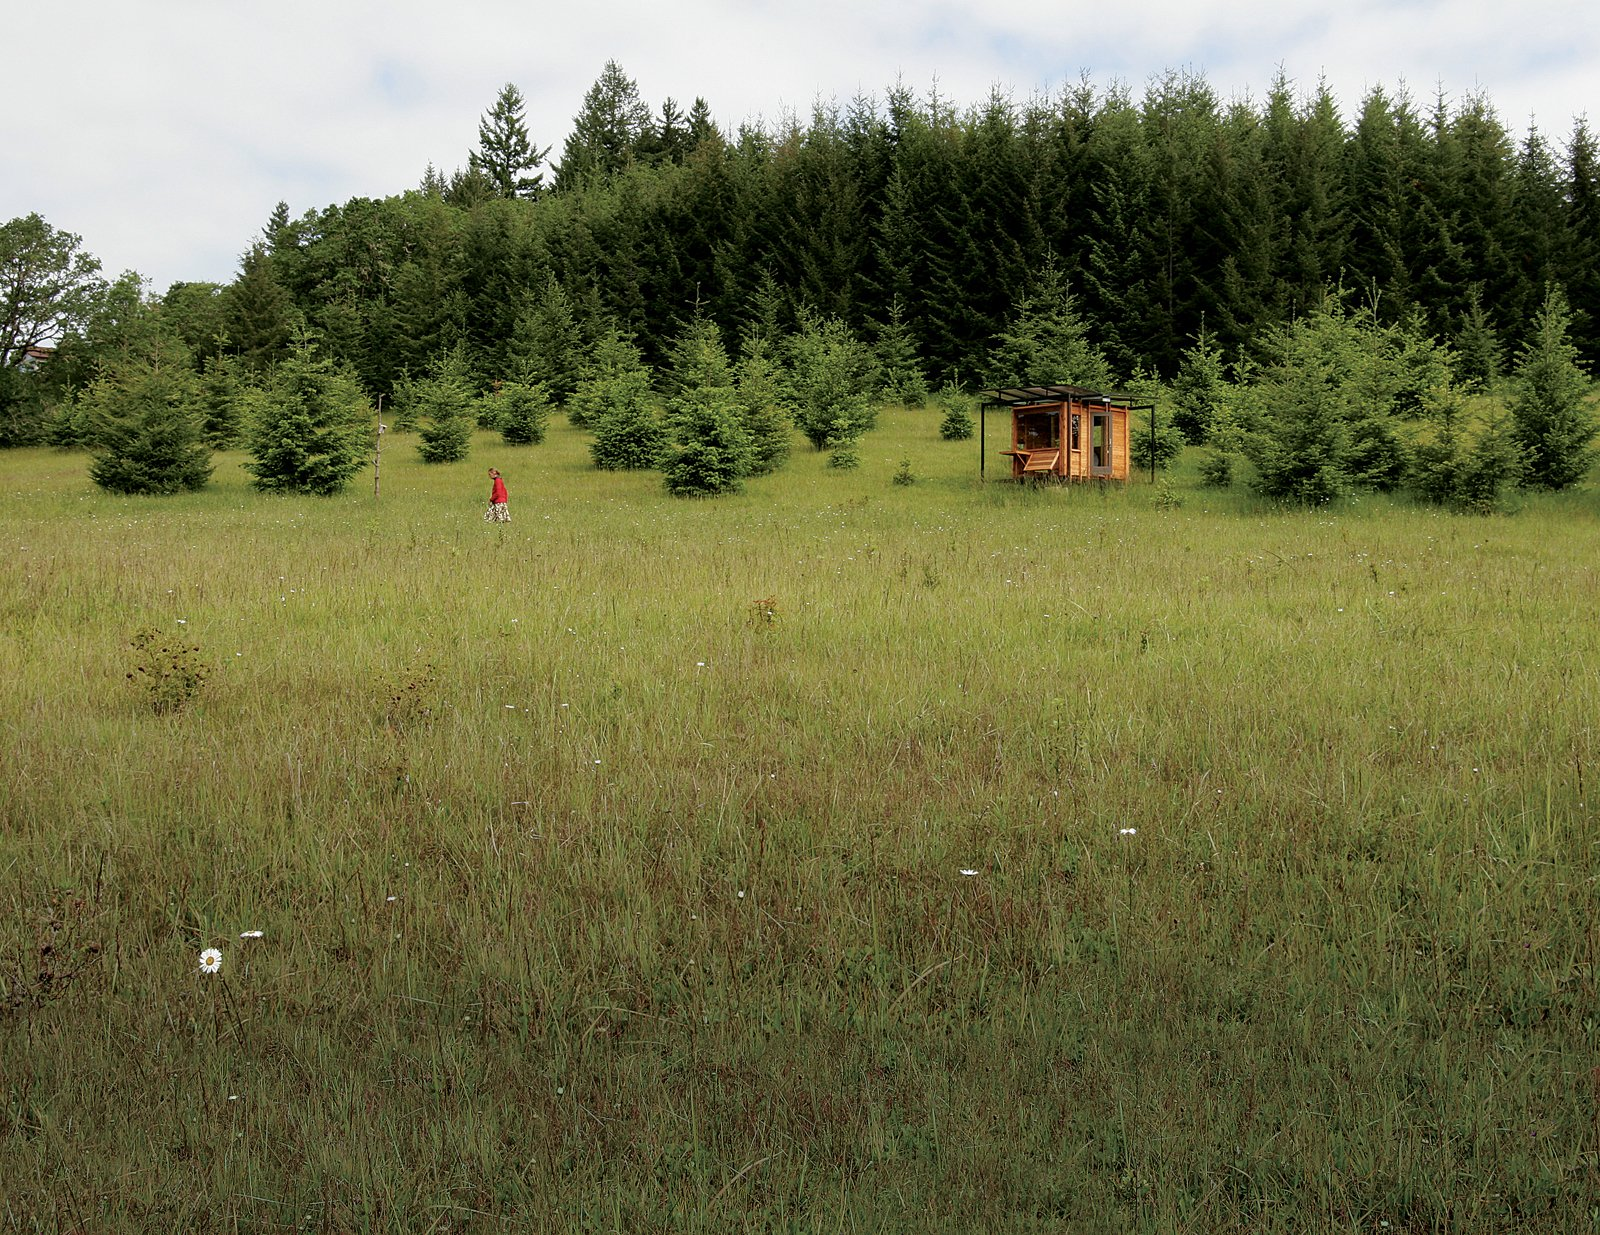 Exterior and Cabin Building Type #outdoor #green #cabin #field #flower #meadow #tree #smallspace #tiny   Cabin from Outdoor